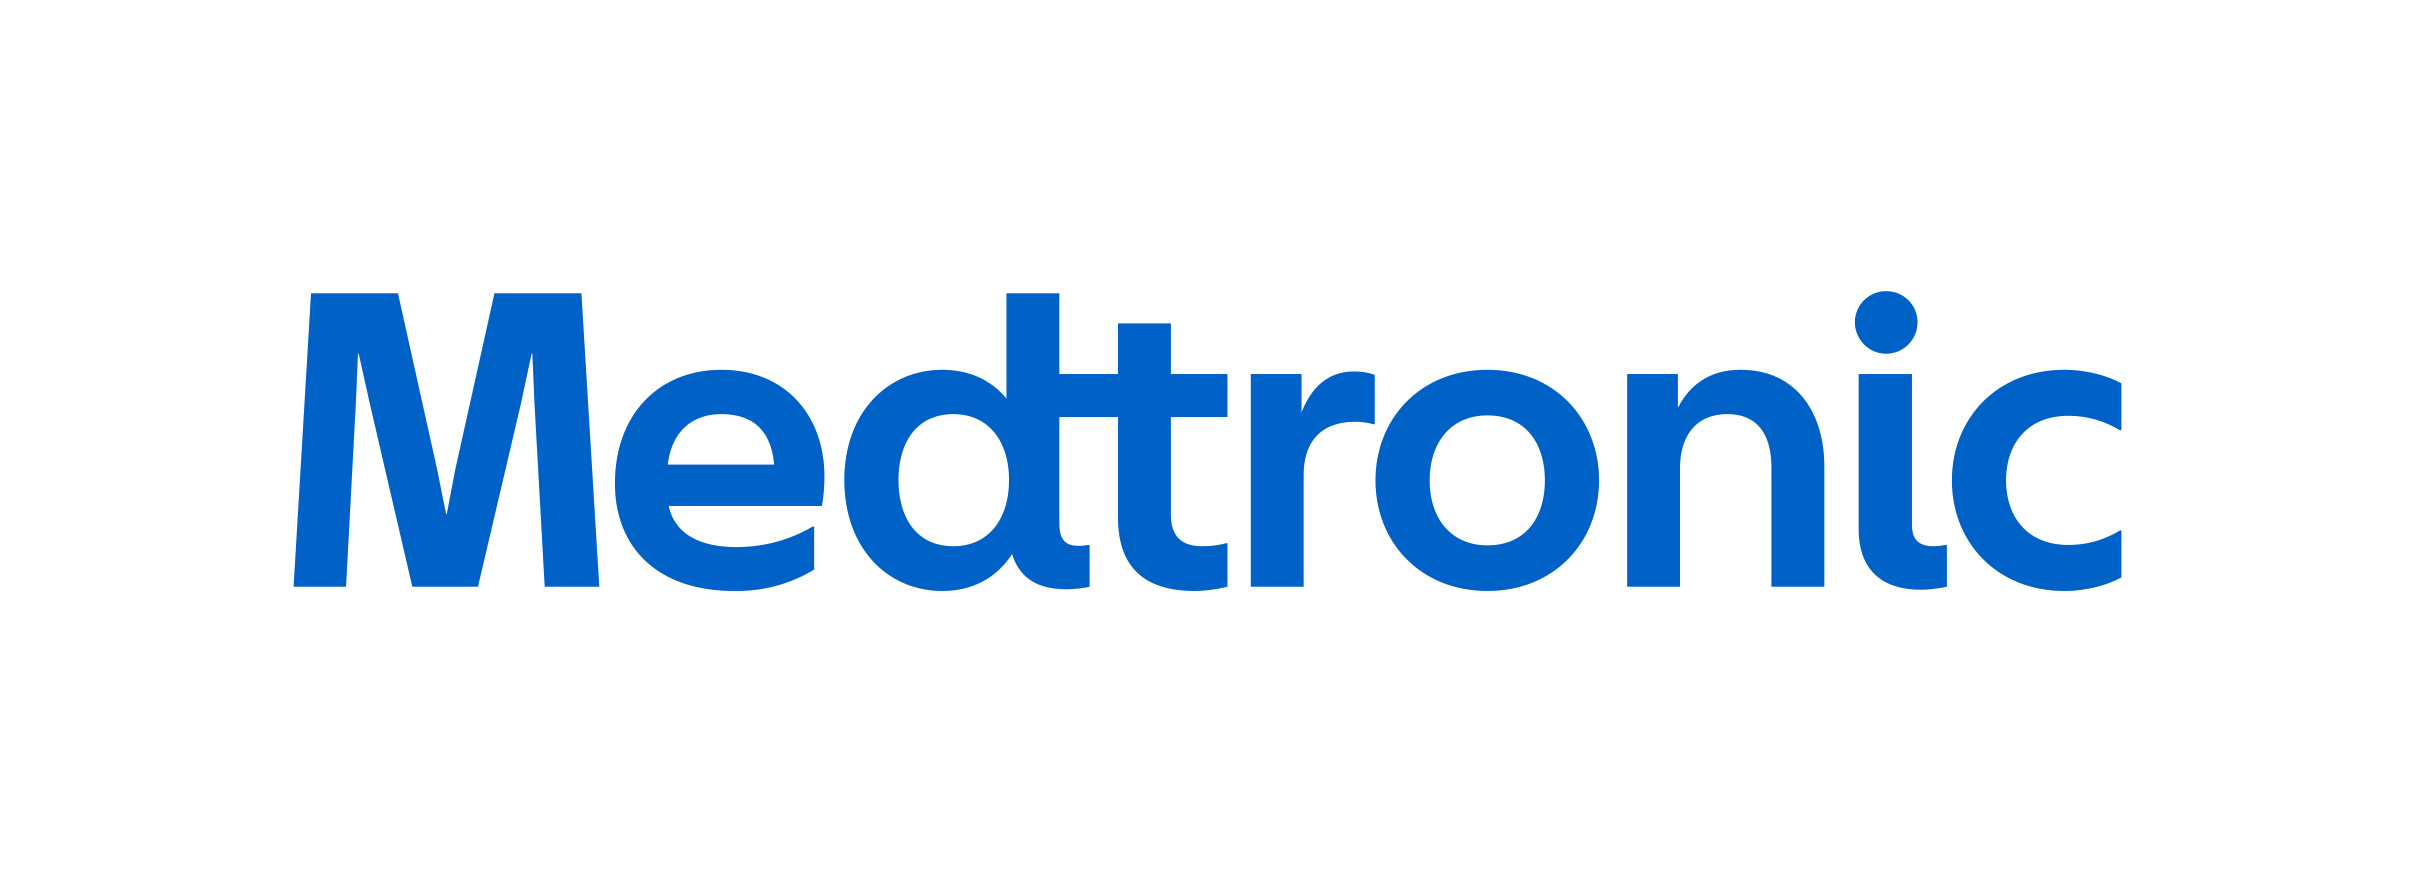 Go to www.Medtronic.com